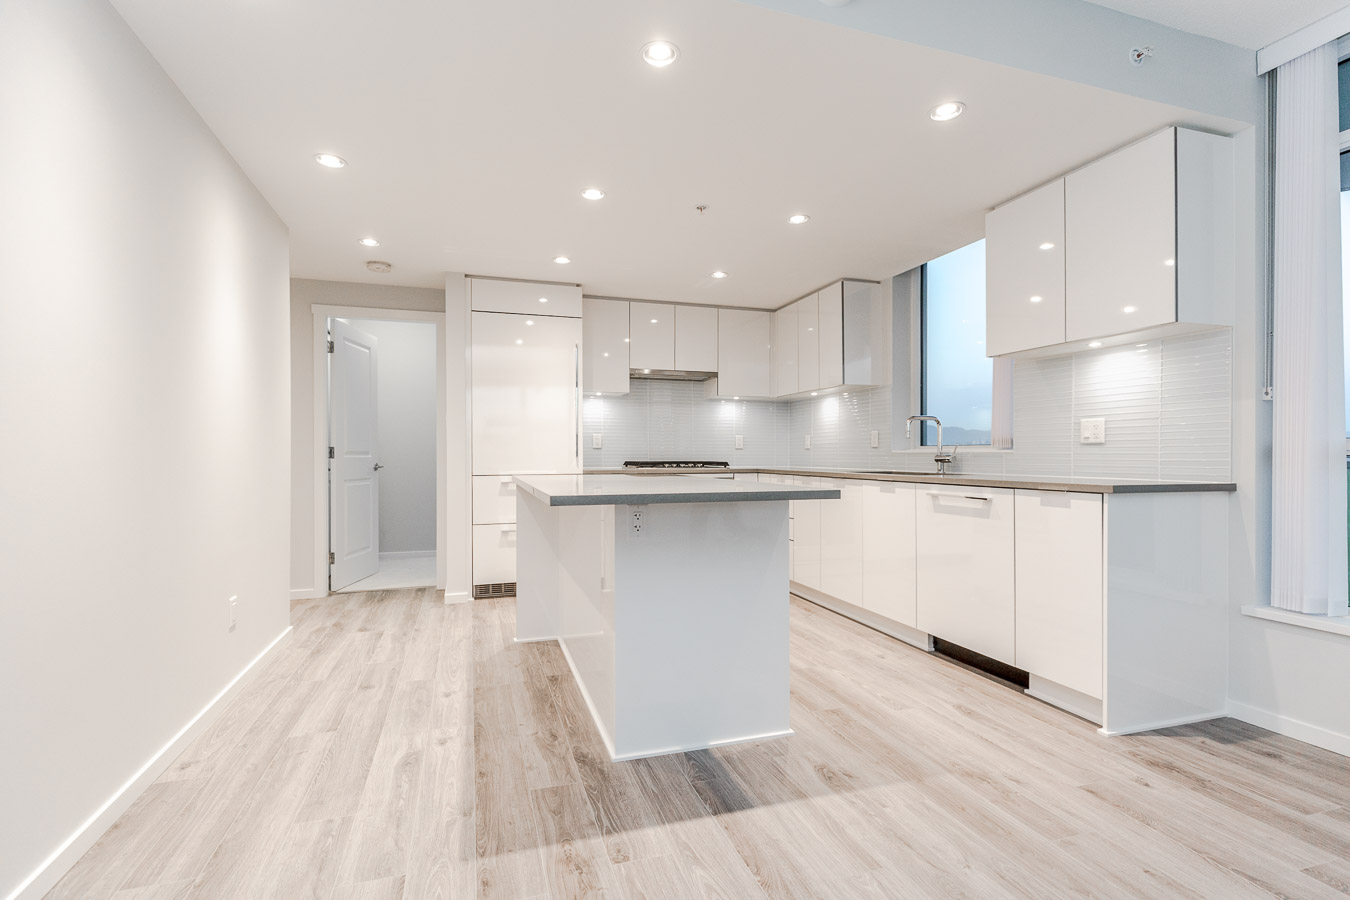 Newly renovated kitchen in Metrotown condo managed by Birds Nest Properties.